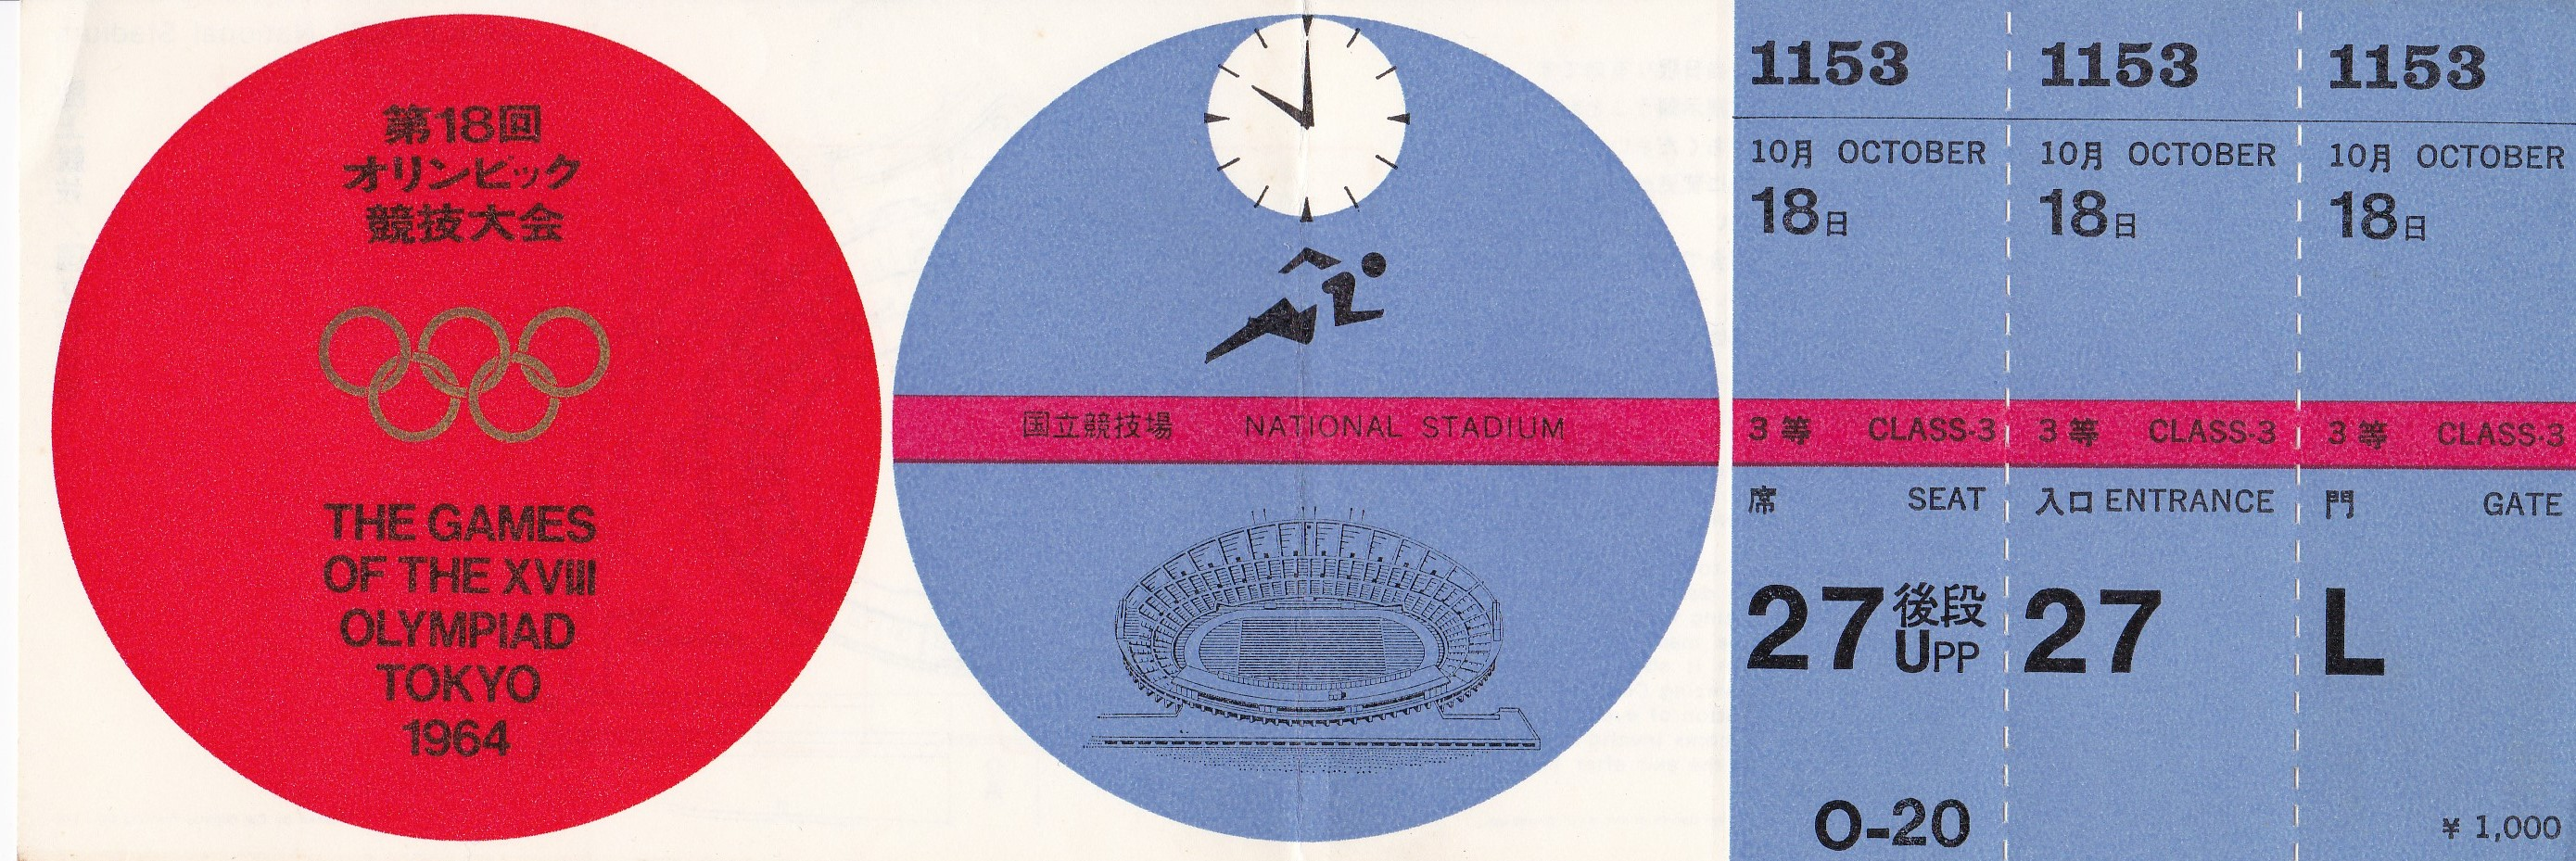 My Ticket for the Tokyo Olympics: What a Day it Would've ...